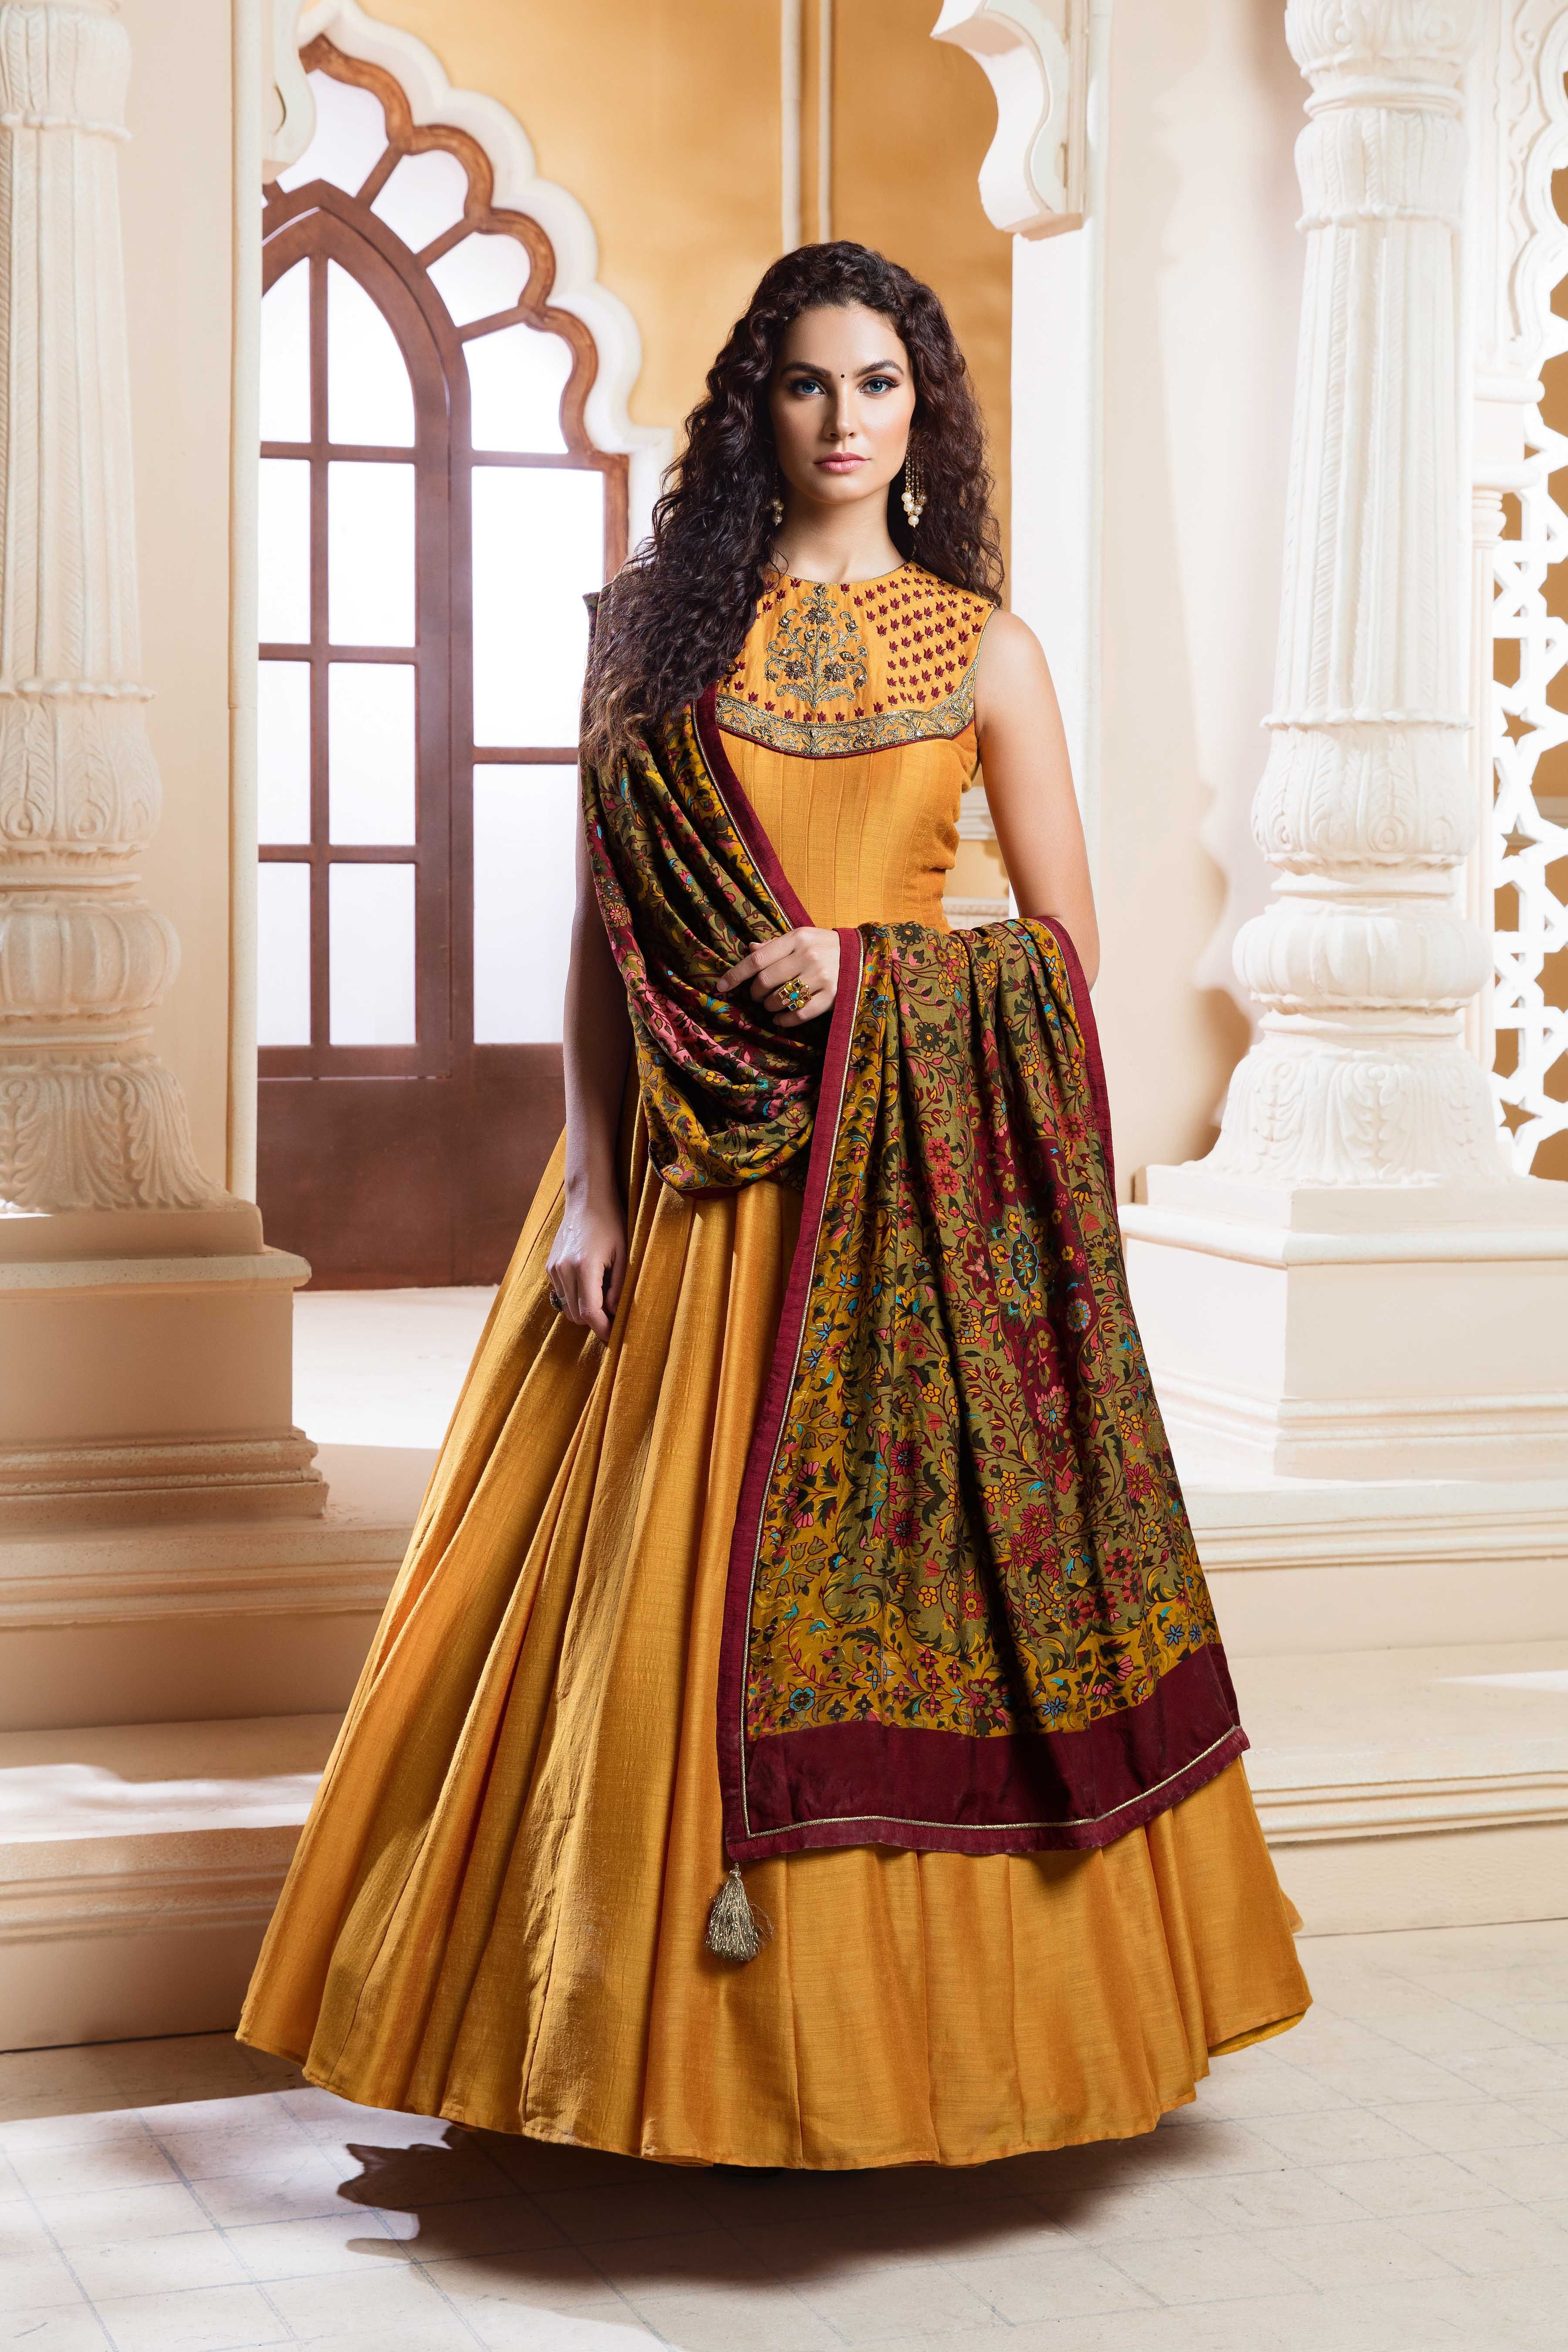 67f8e308bd1 Designer Mustard Pure Silk Outfit with Gorgeous Dupatta in 2019 ...